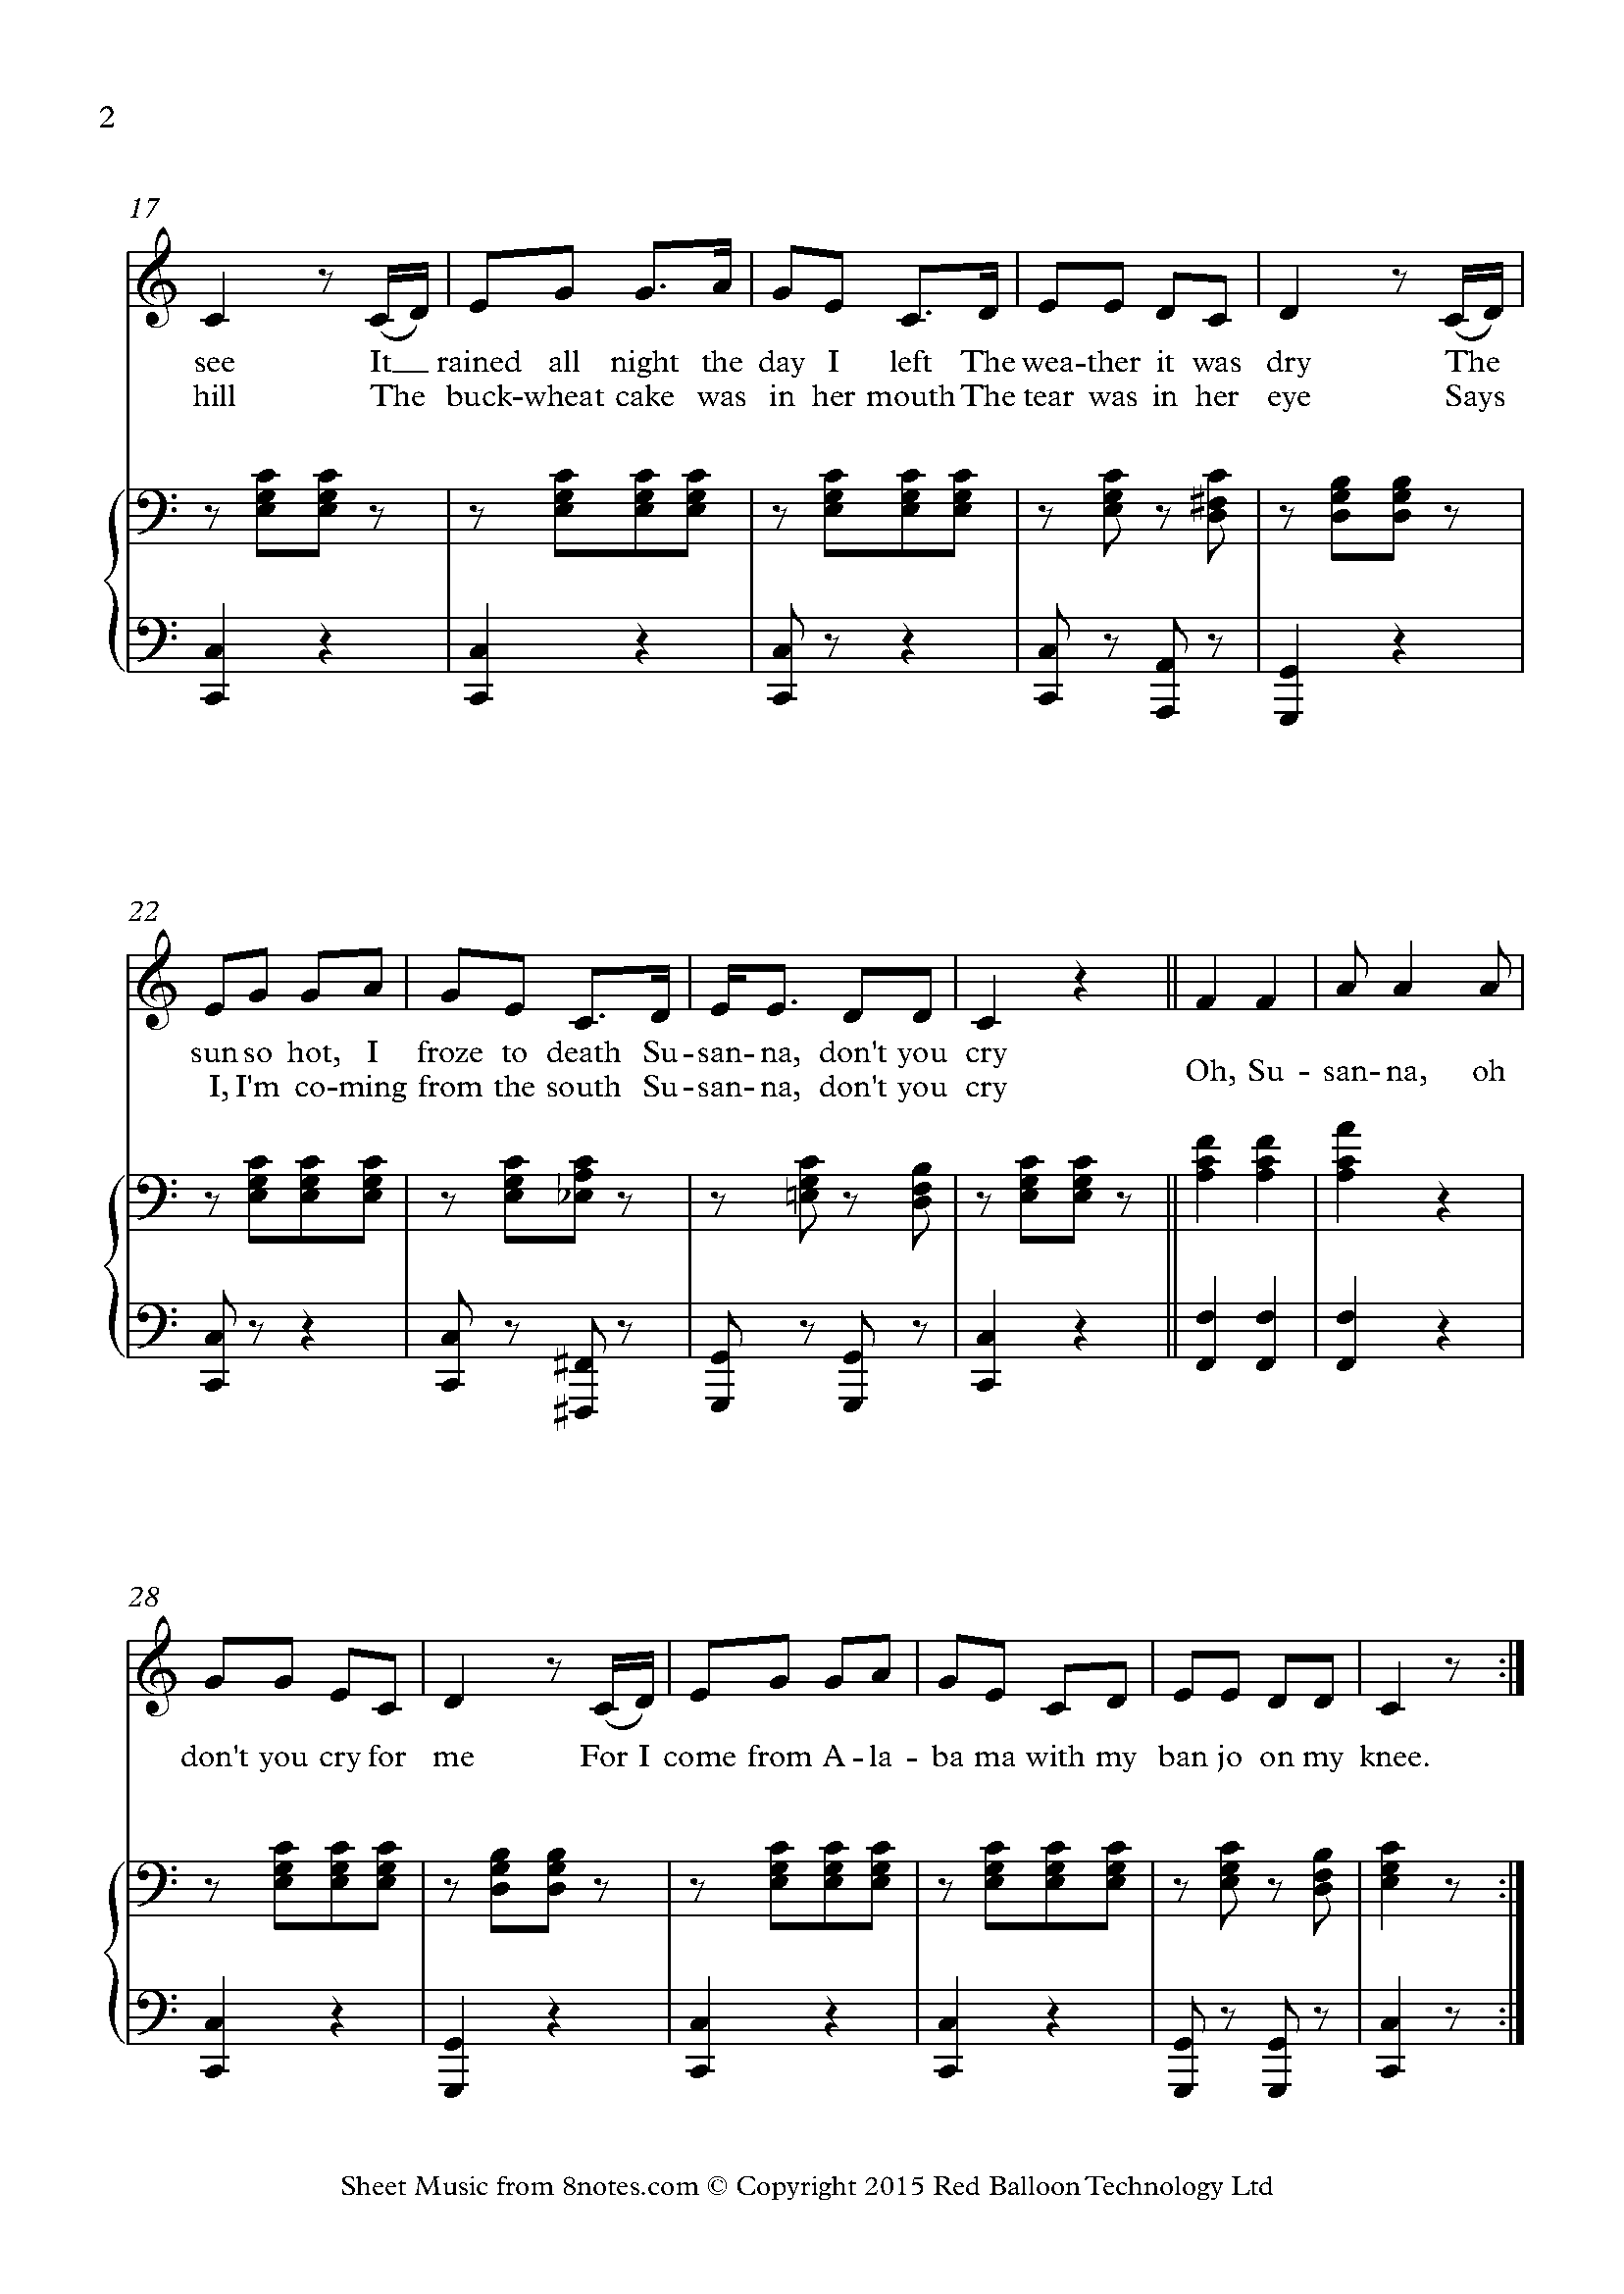 stephen foster - oh susanna sheet music for voice - 8notes.com  8notes